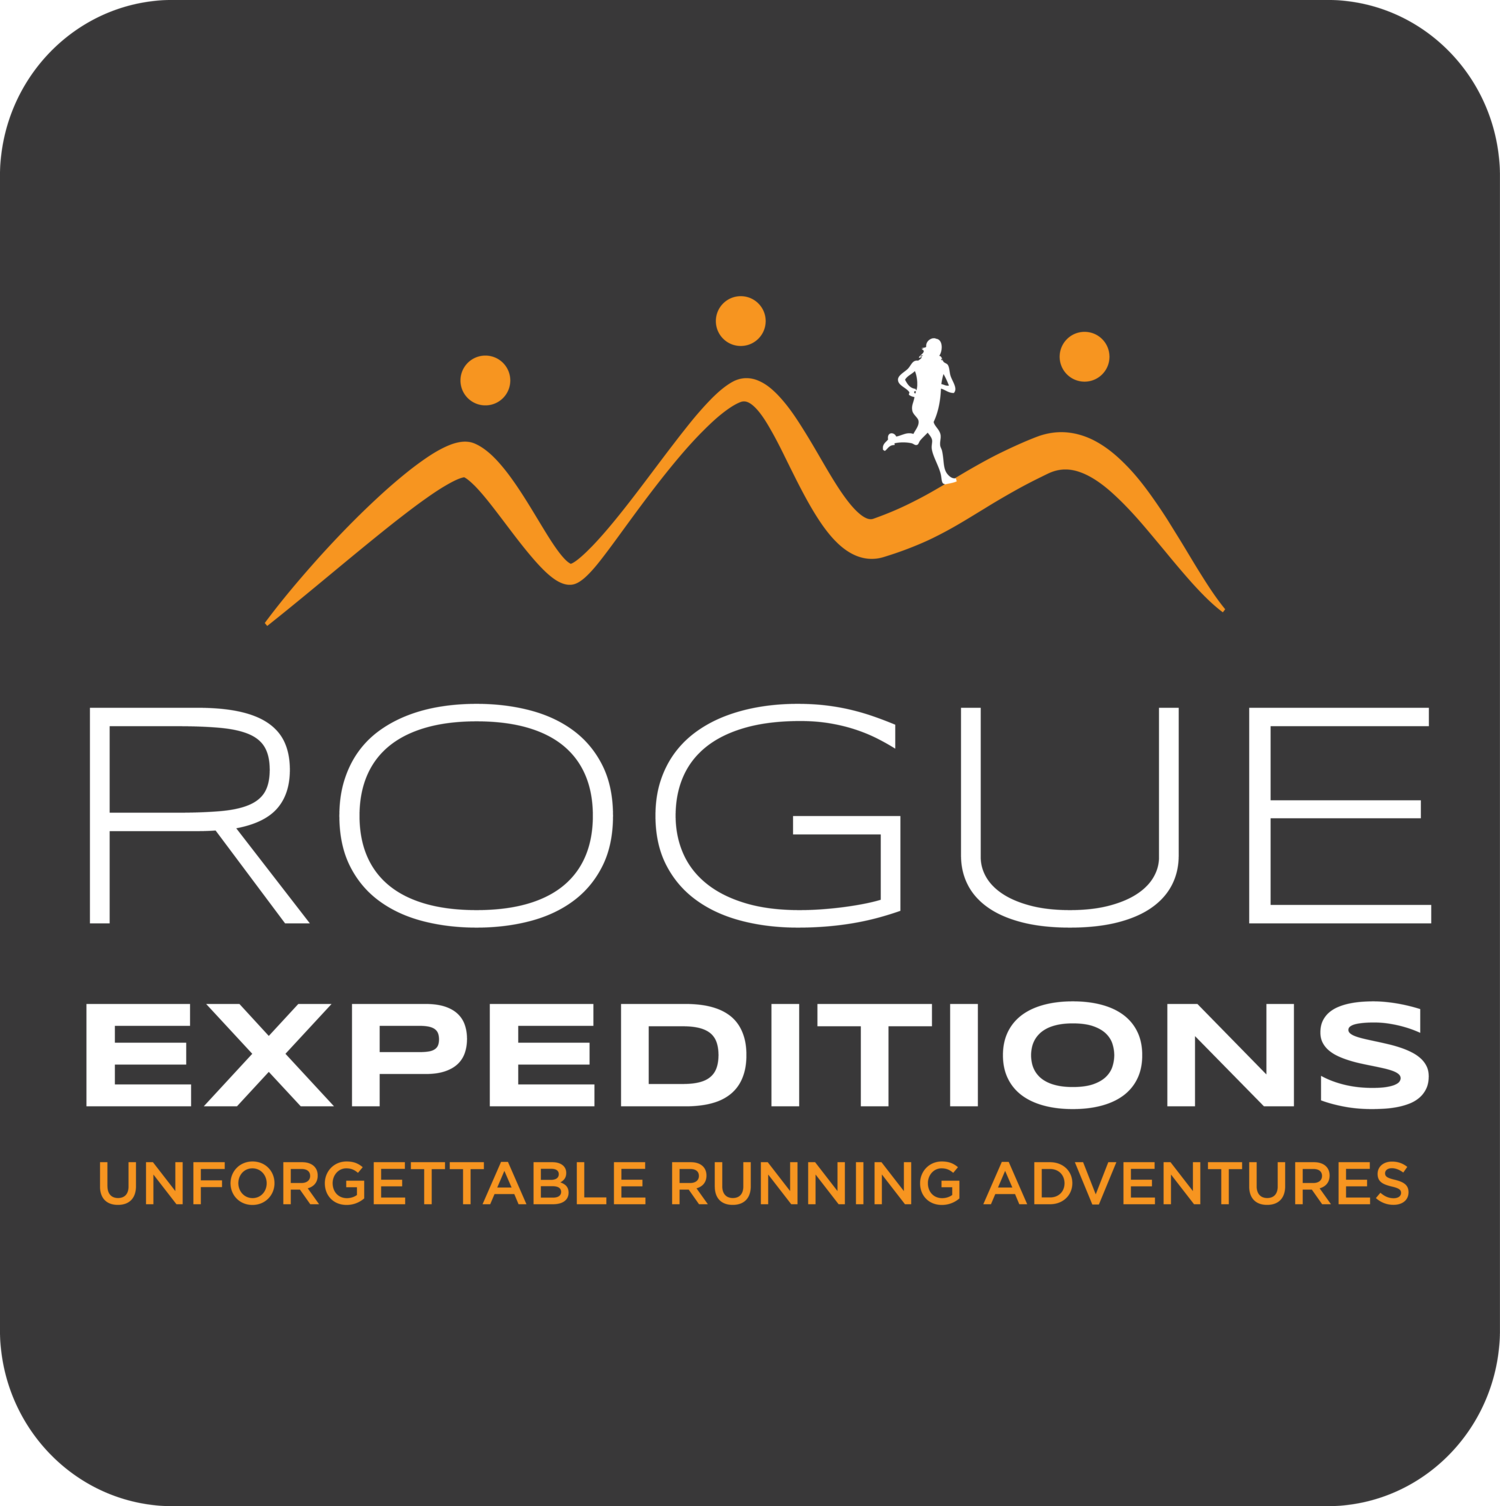 Rogue Expeditions